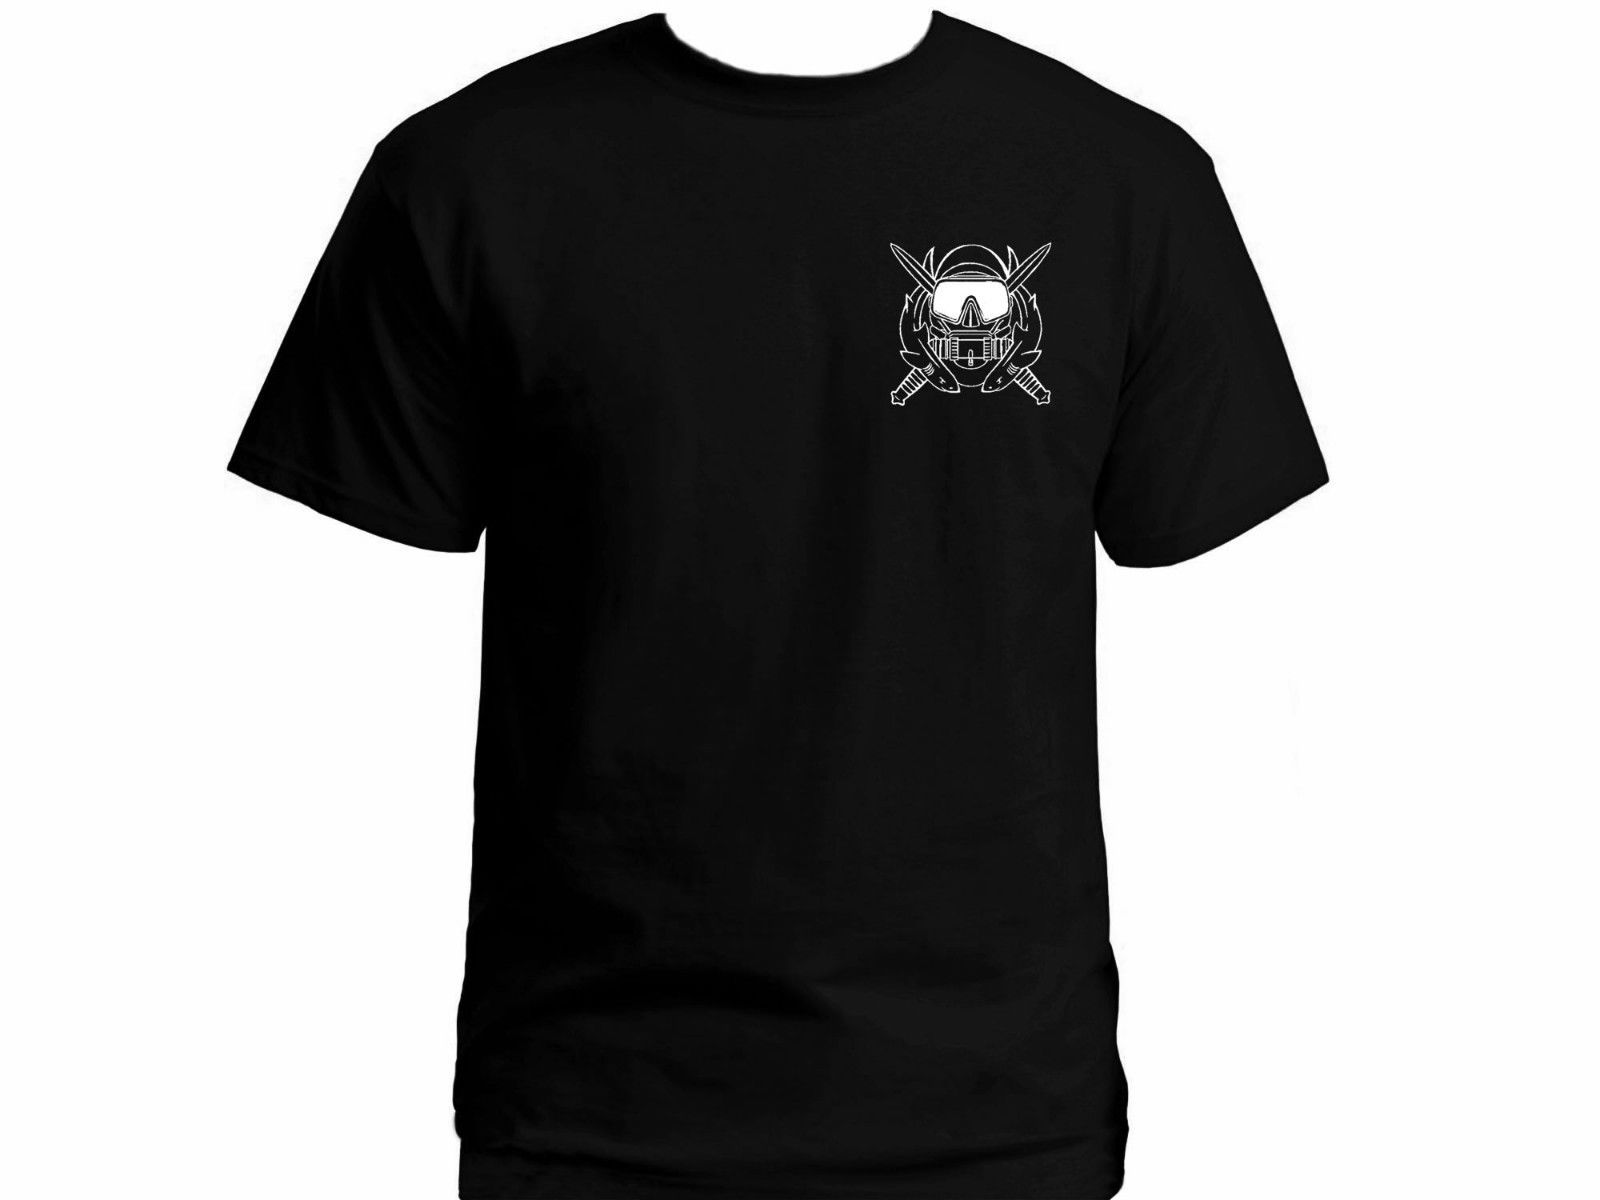 2019 US Army Special Operations Ops Diver Diver Black Graphic Military T-shirt